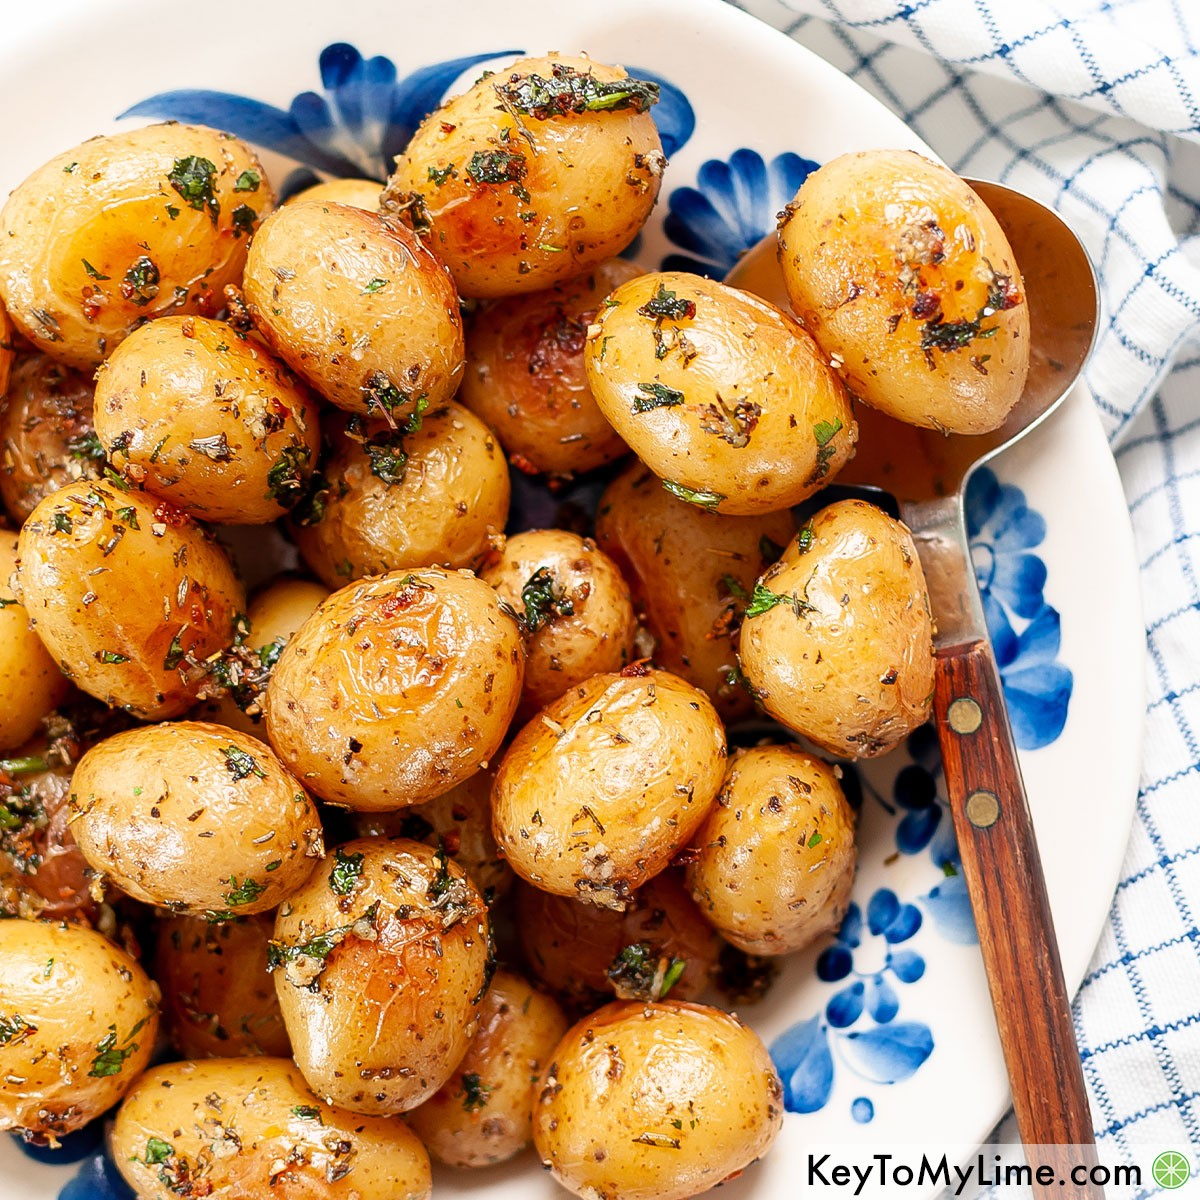 The best oven roasted baby potatoes recipe.